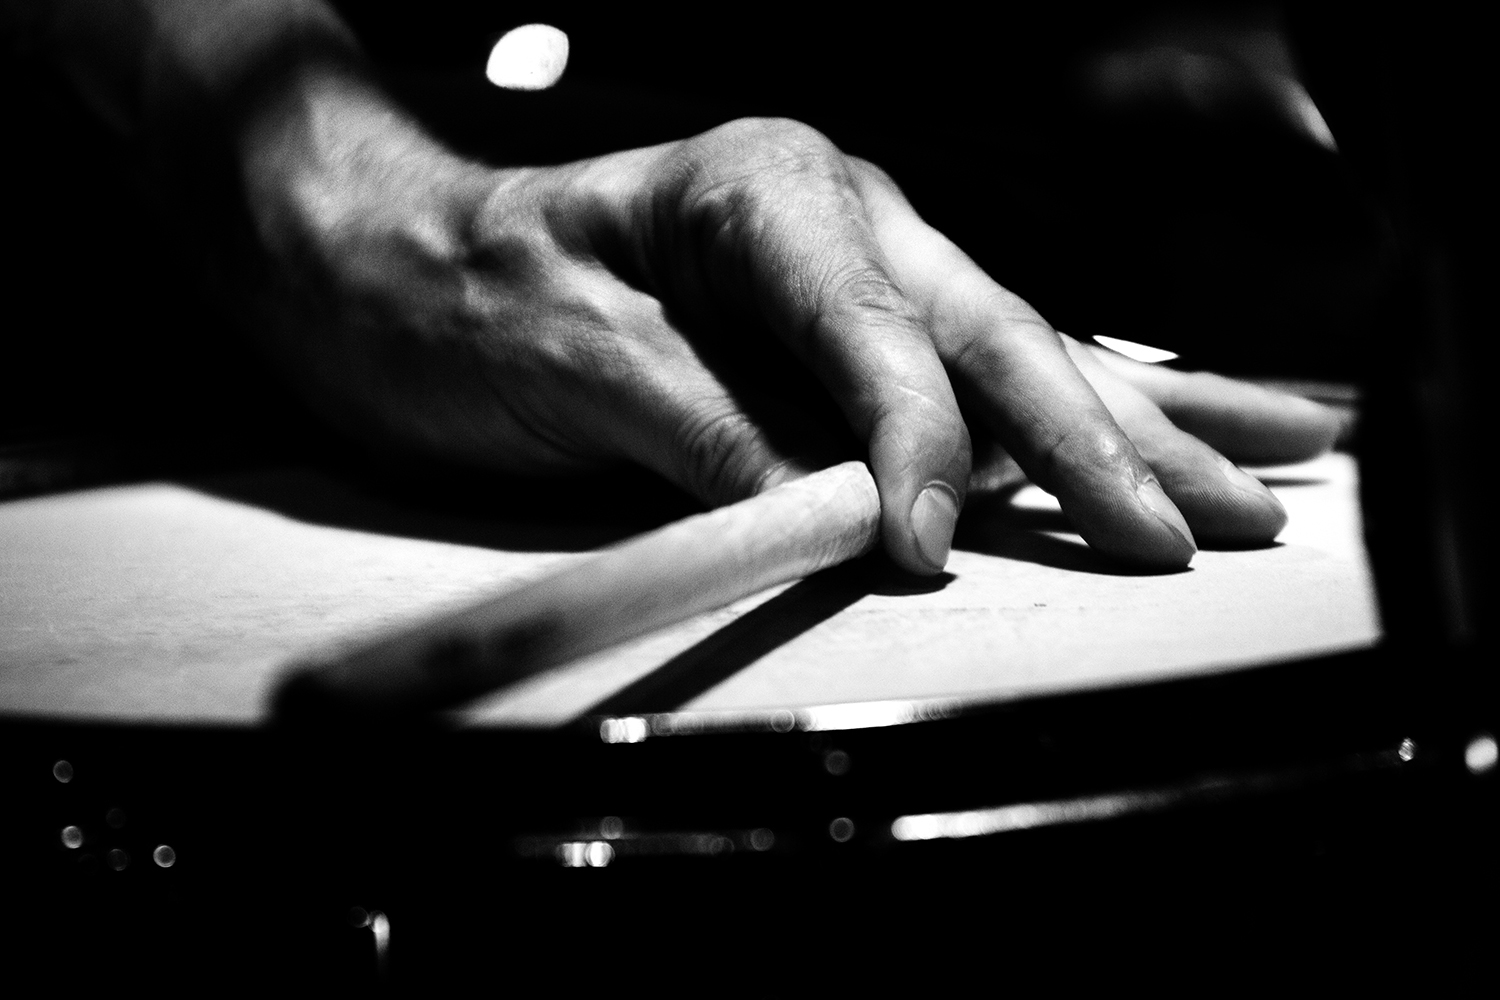 Ches Smith by Laurent Orseau - Concert - Les Ateliers Claus - Brussels, Belgium #13